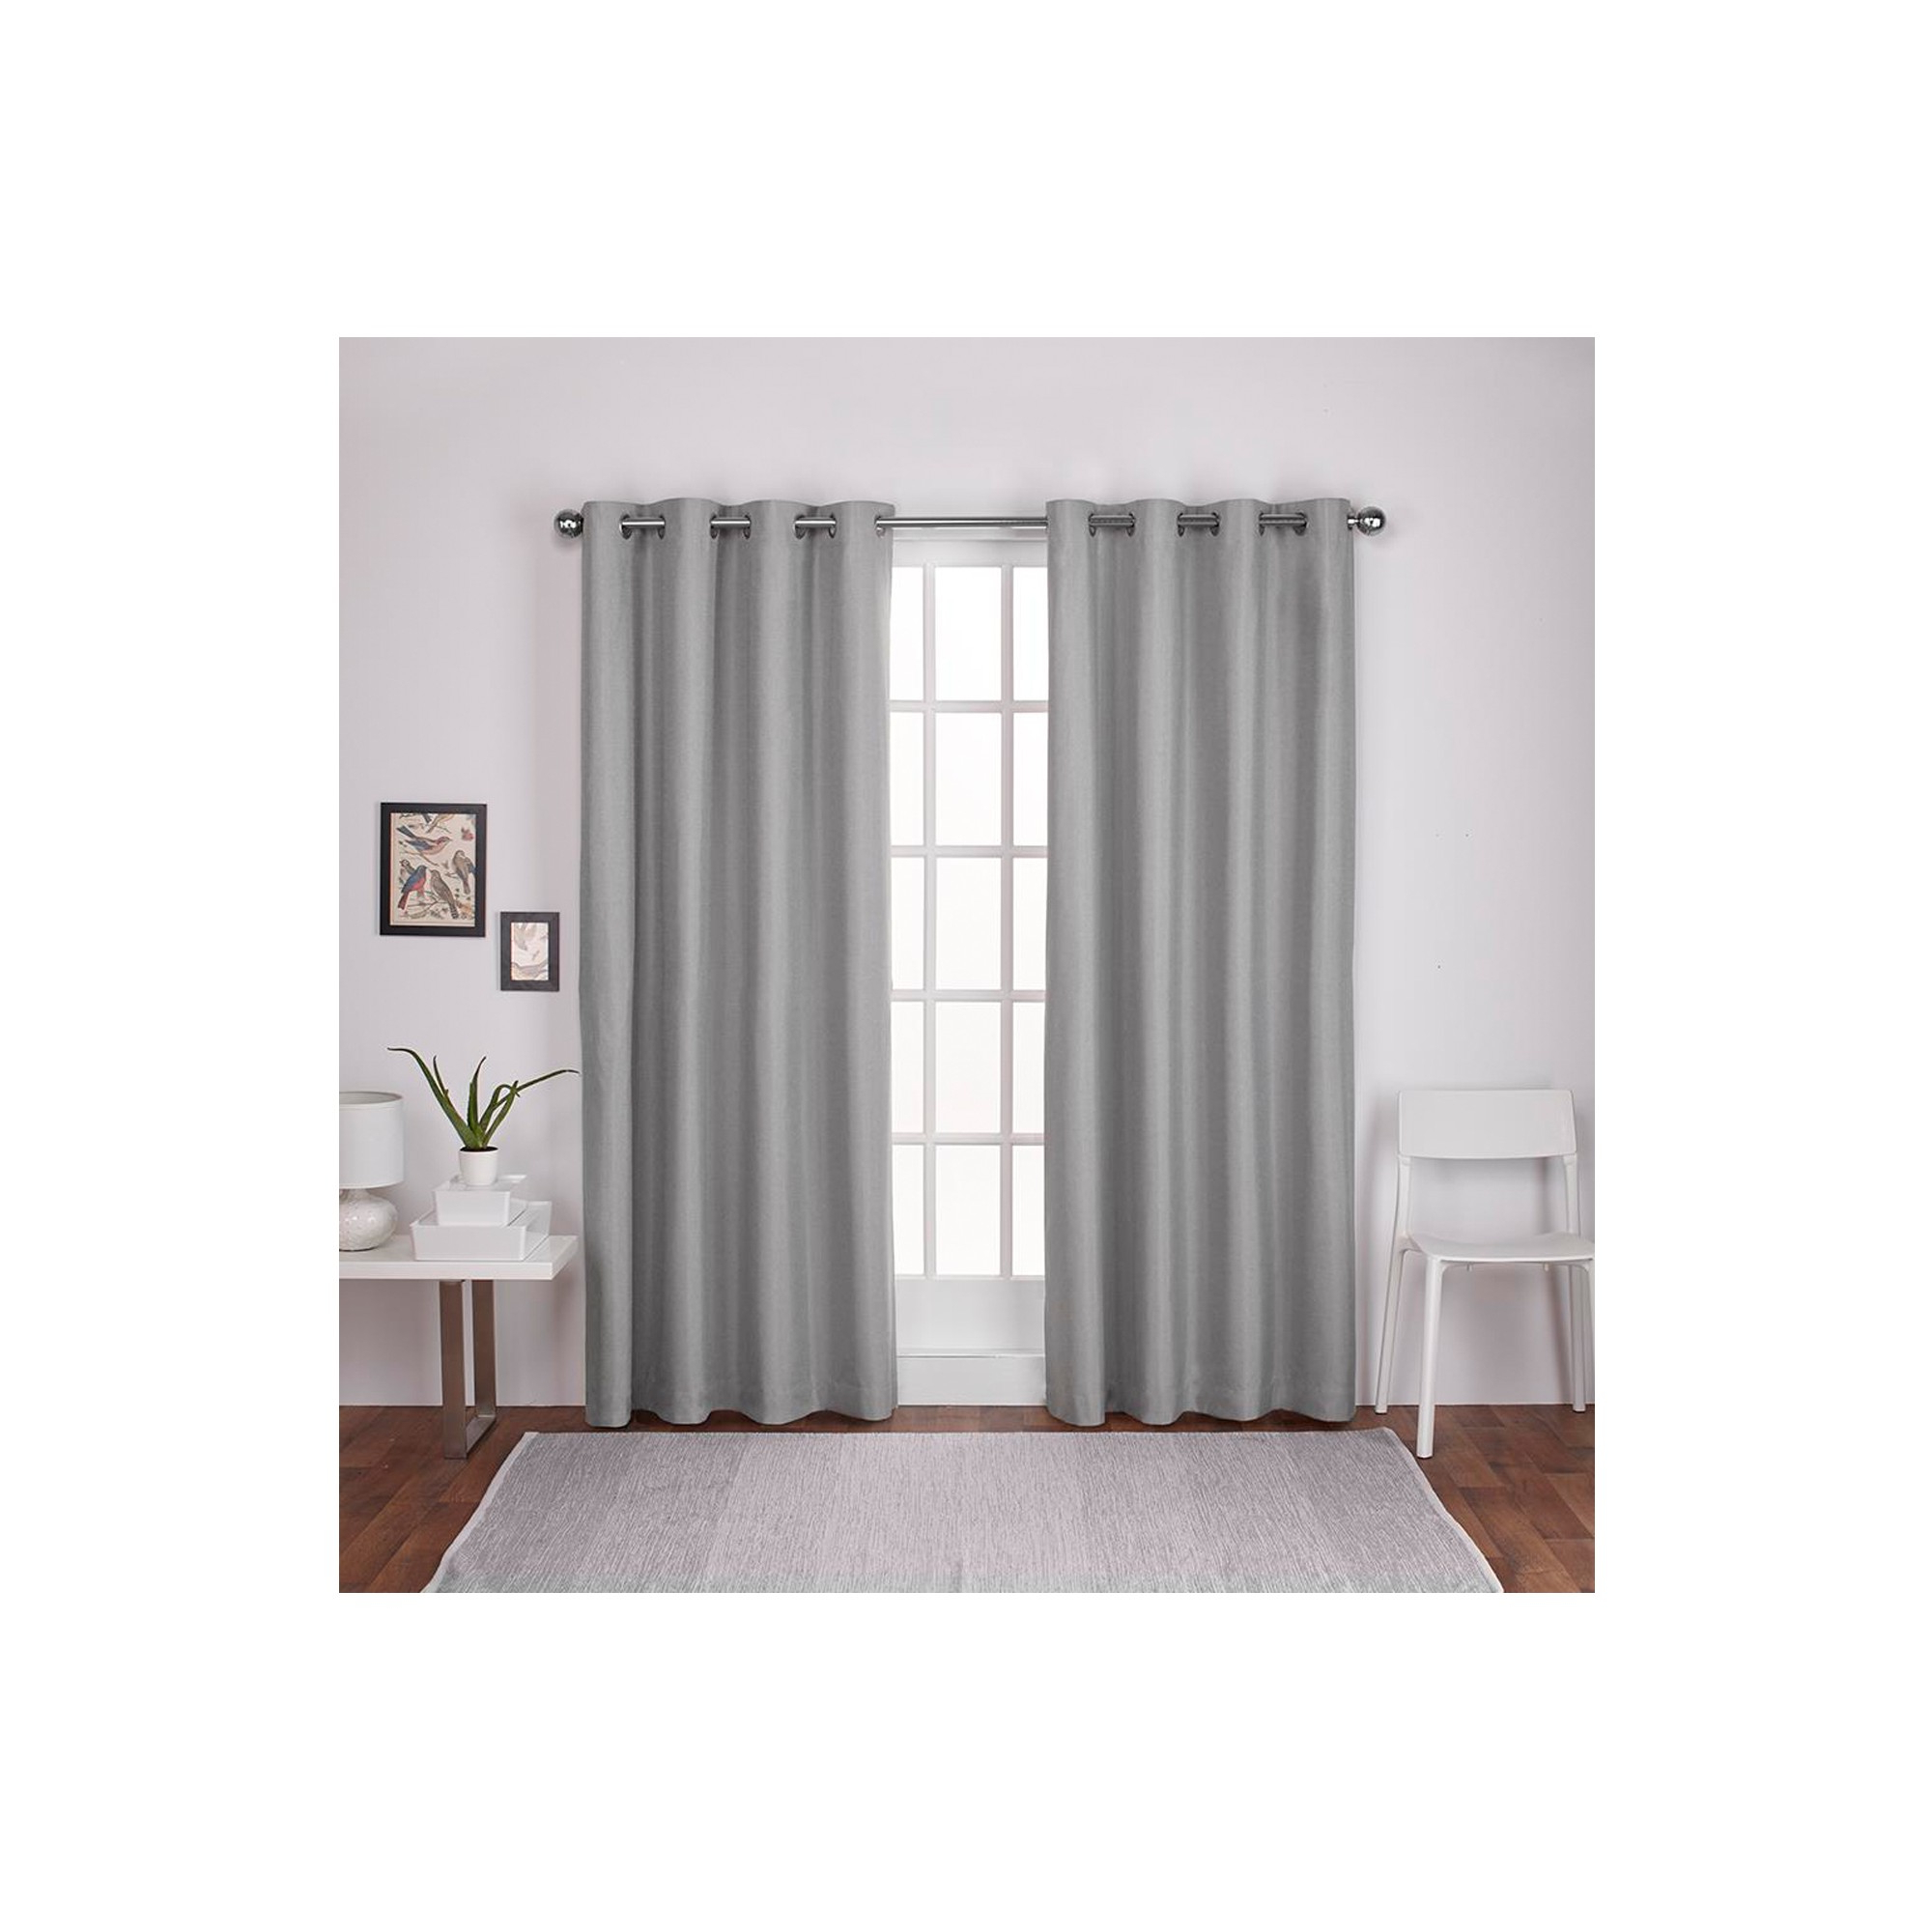 Most Recent London Thermal Textured Linen Grommet Top Window Curtain For Thermal Textured Linen Grommet Top Curtain Panel Pairs (View 5 of 20)